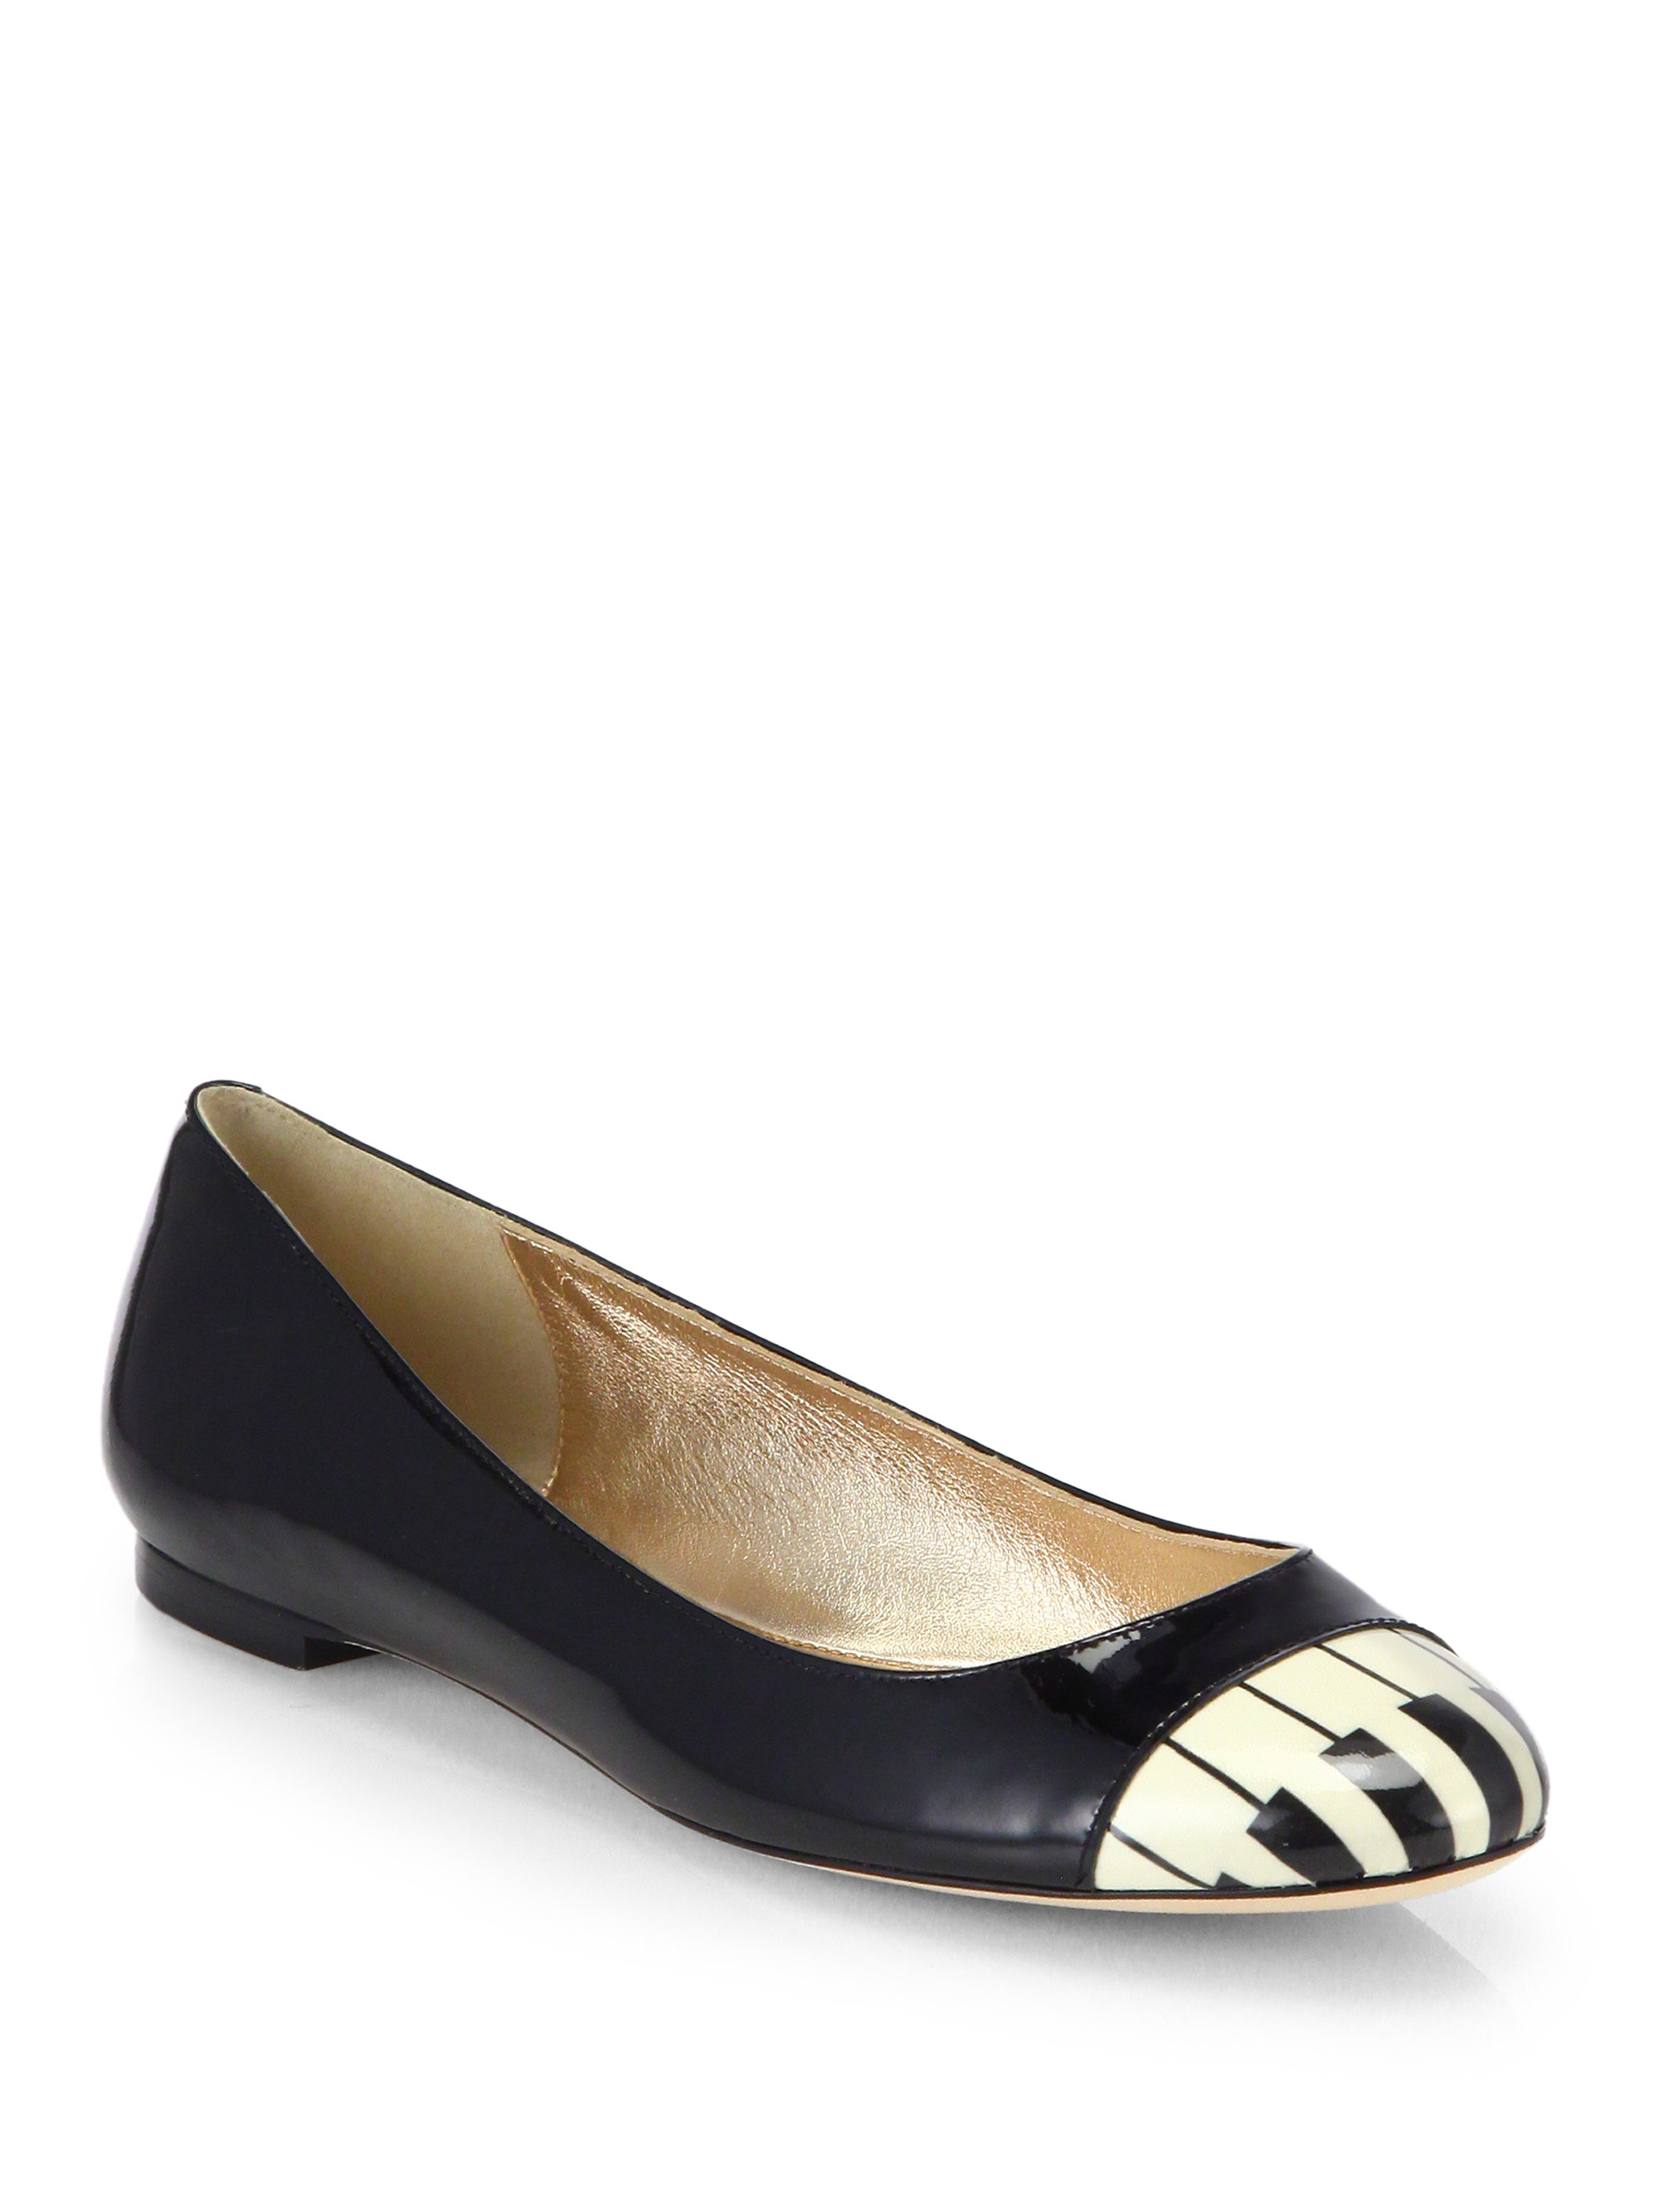 Kate spade jazz piano patent leather ballet flats in black for Kate spade new york flats